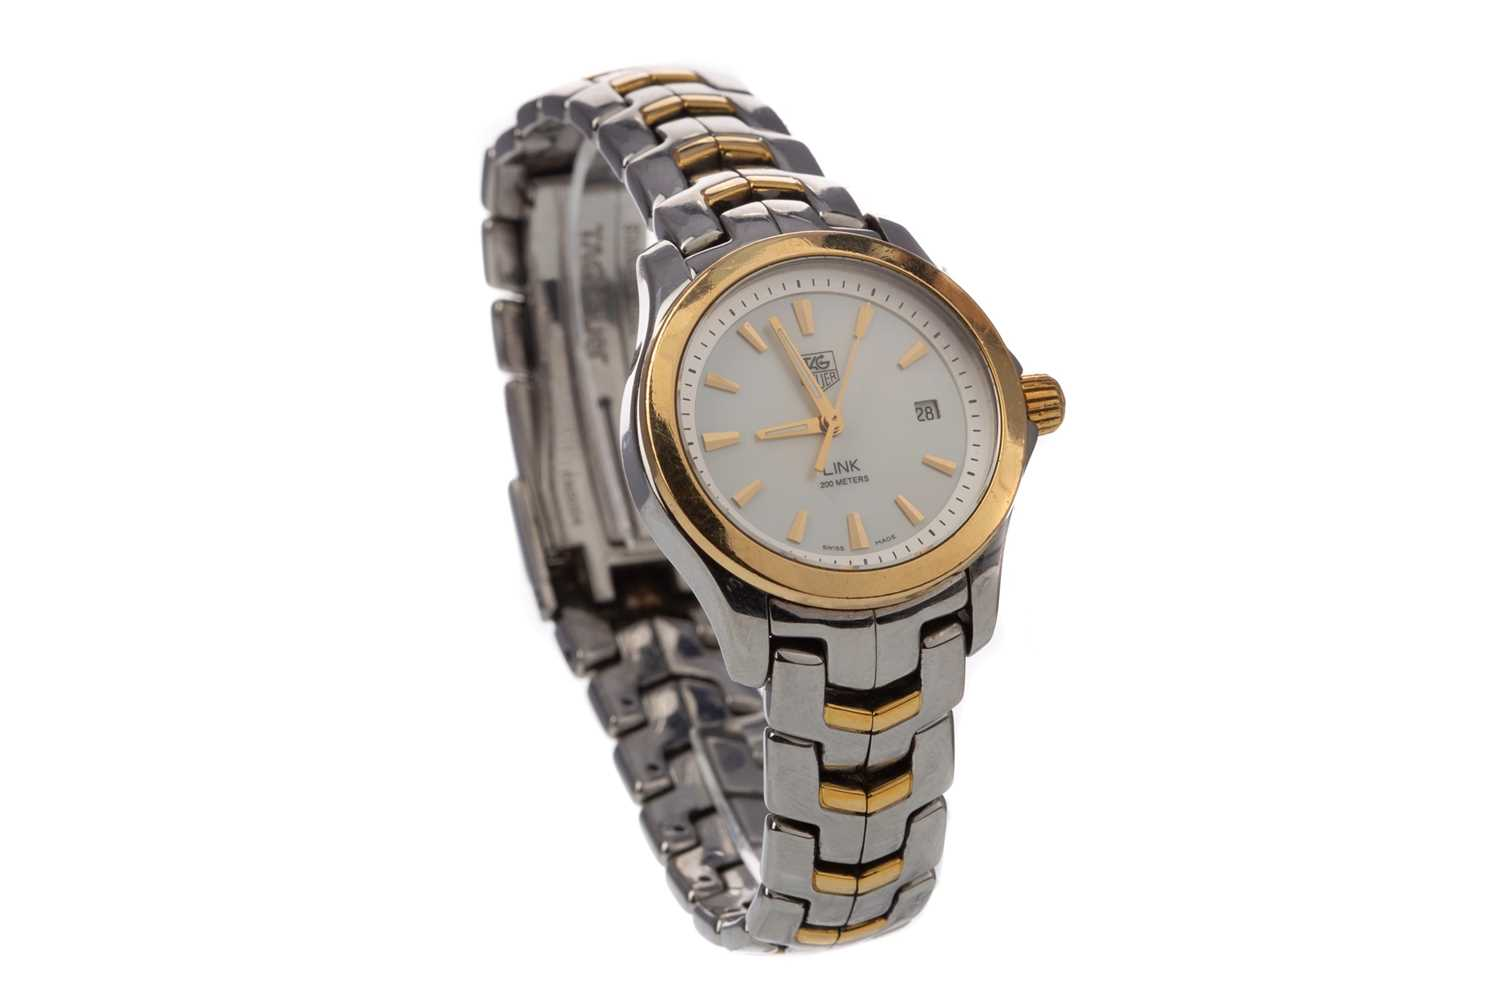 Lot 735 - A LADY'S TAG HEUER LINK STAINLESS STEEL QUARTZ WRIST WATCH